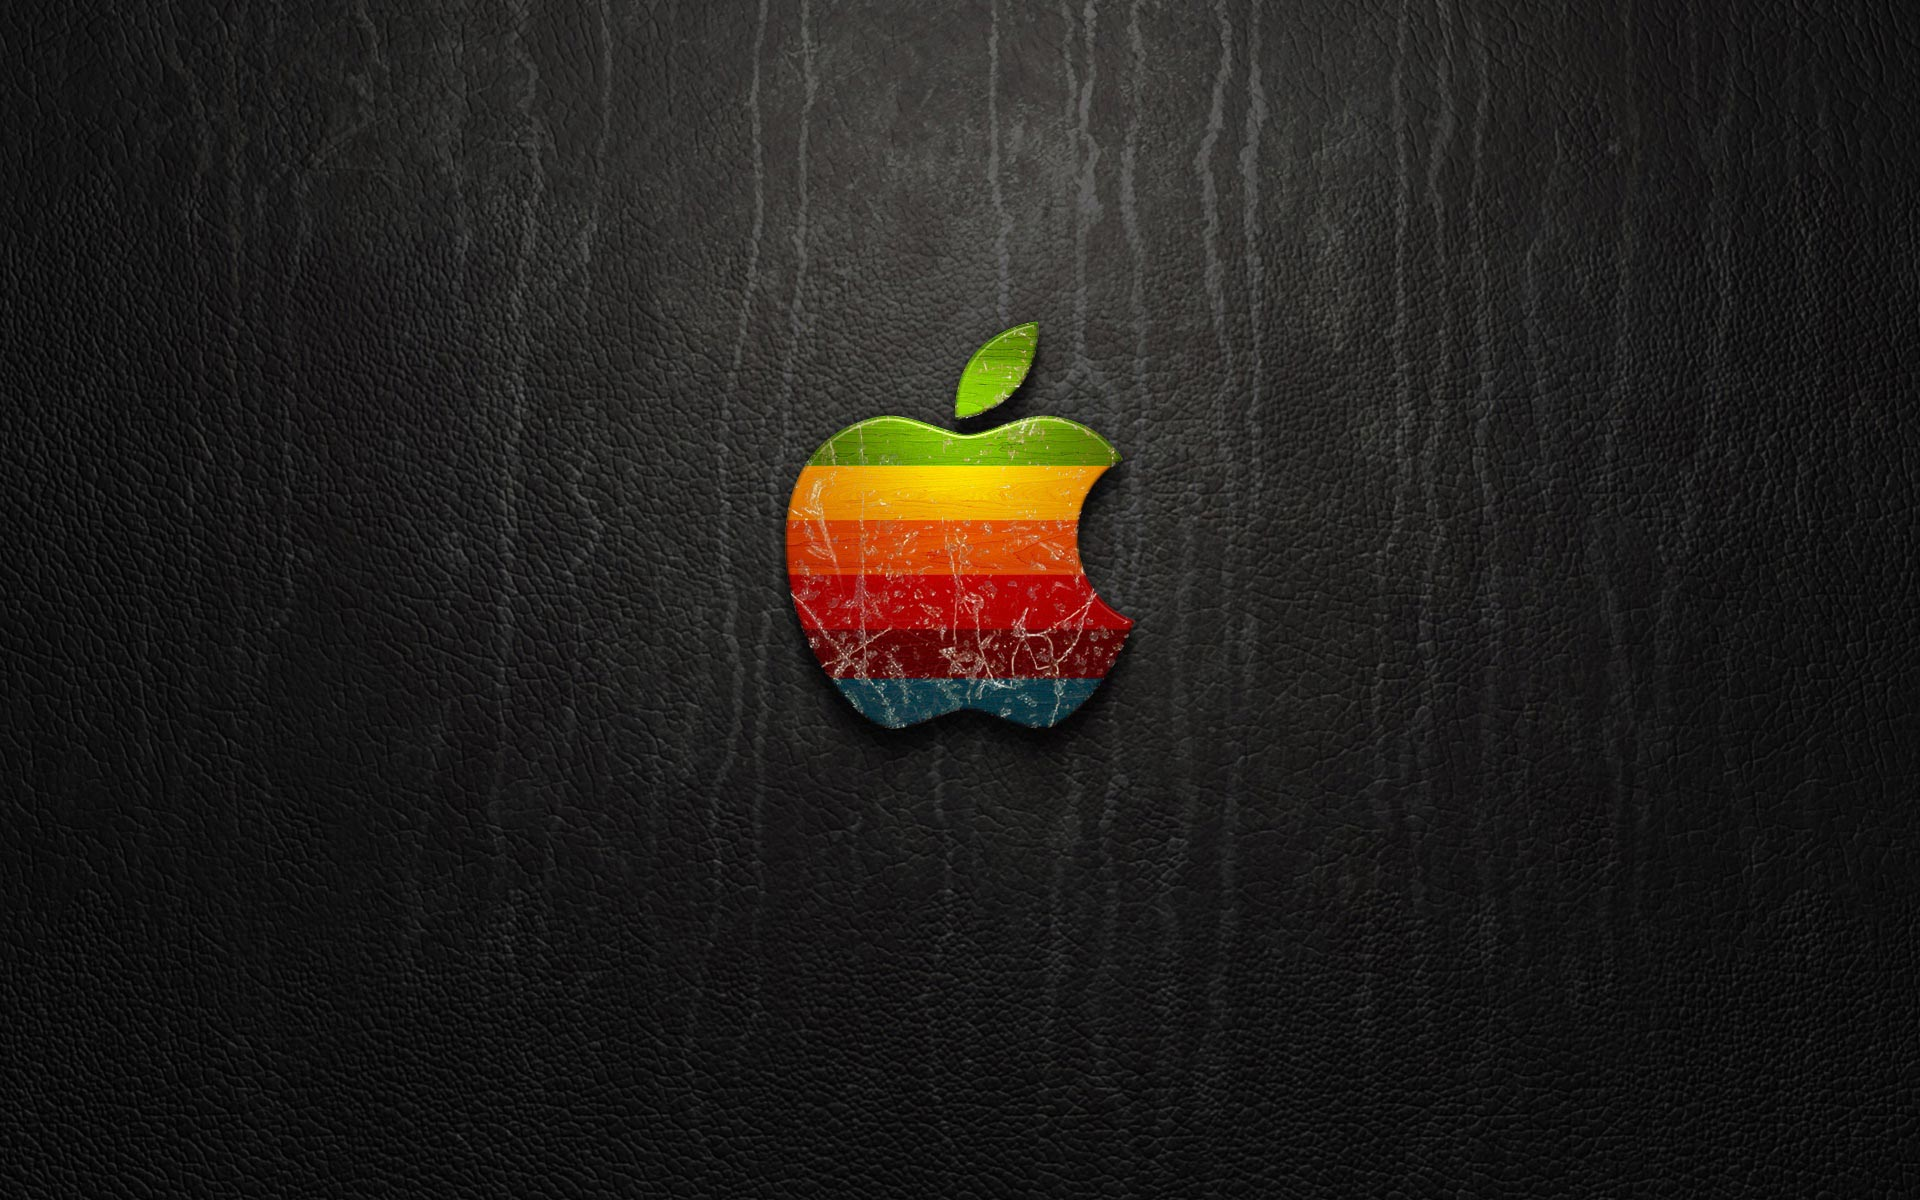 apple imac backgrounds Pictures 1920x1200